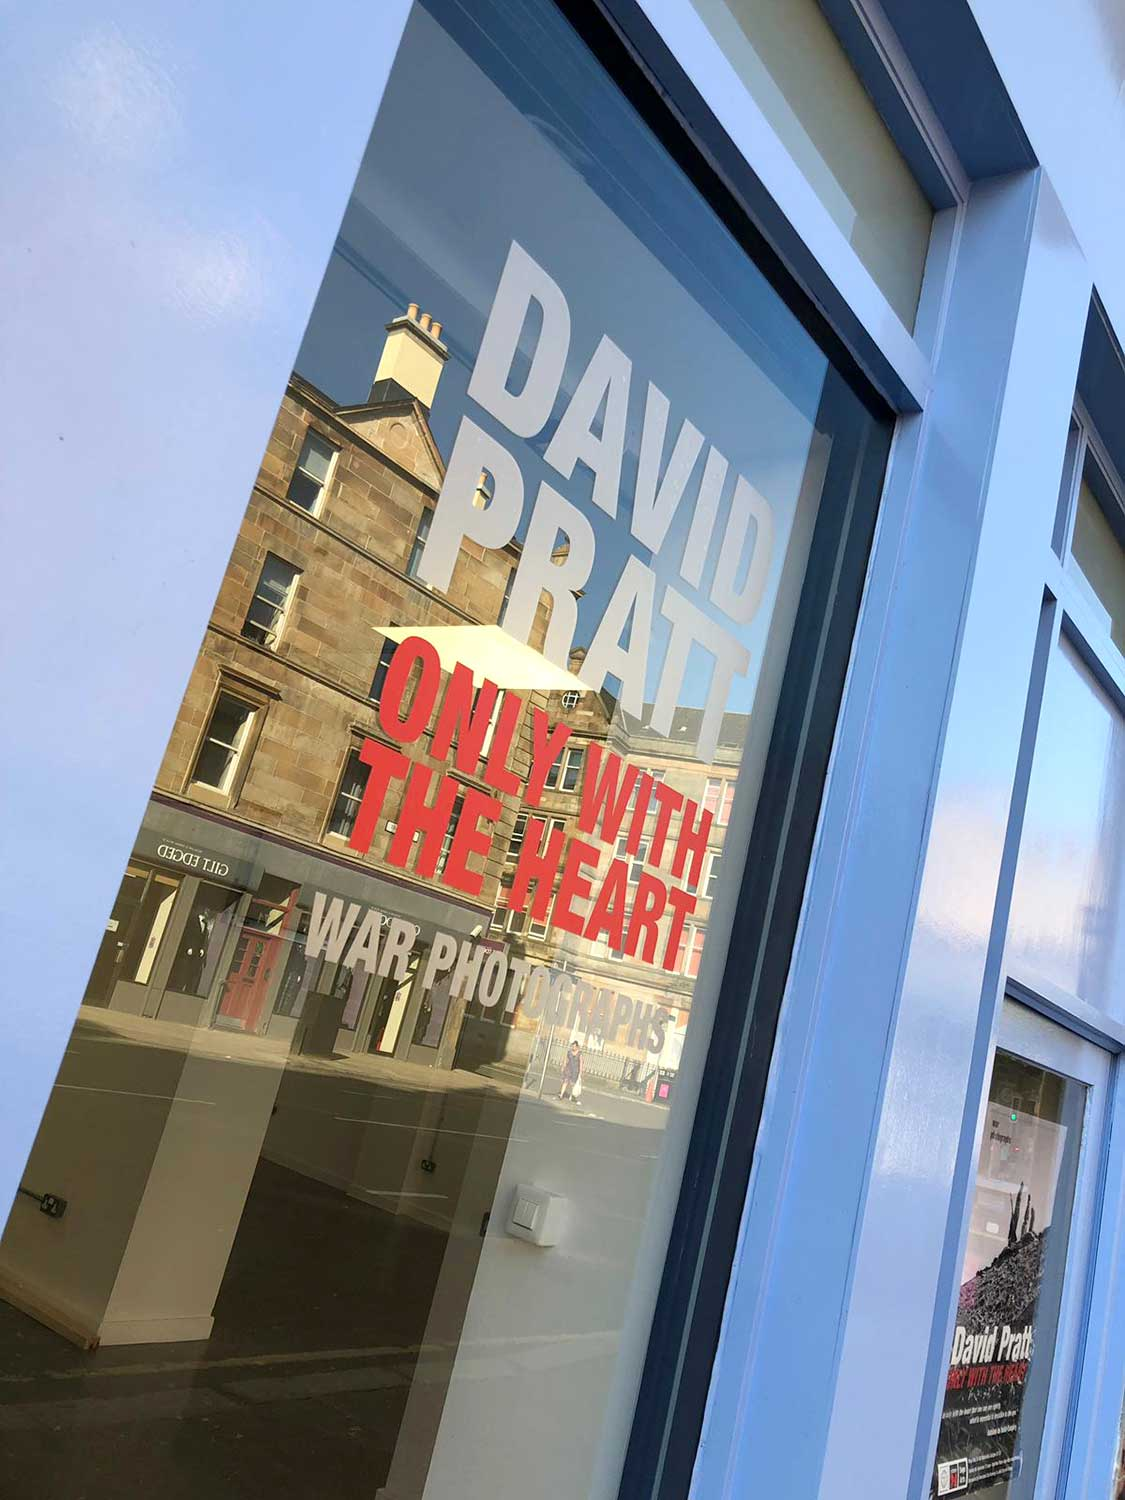 Image of printed and cut vinyl fitted to a glass window in a shop door.